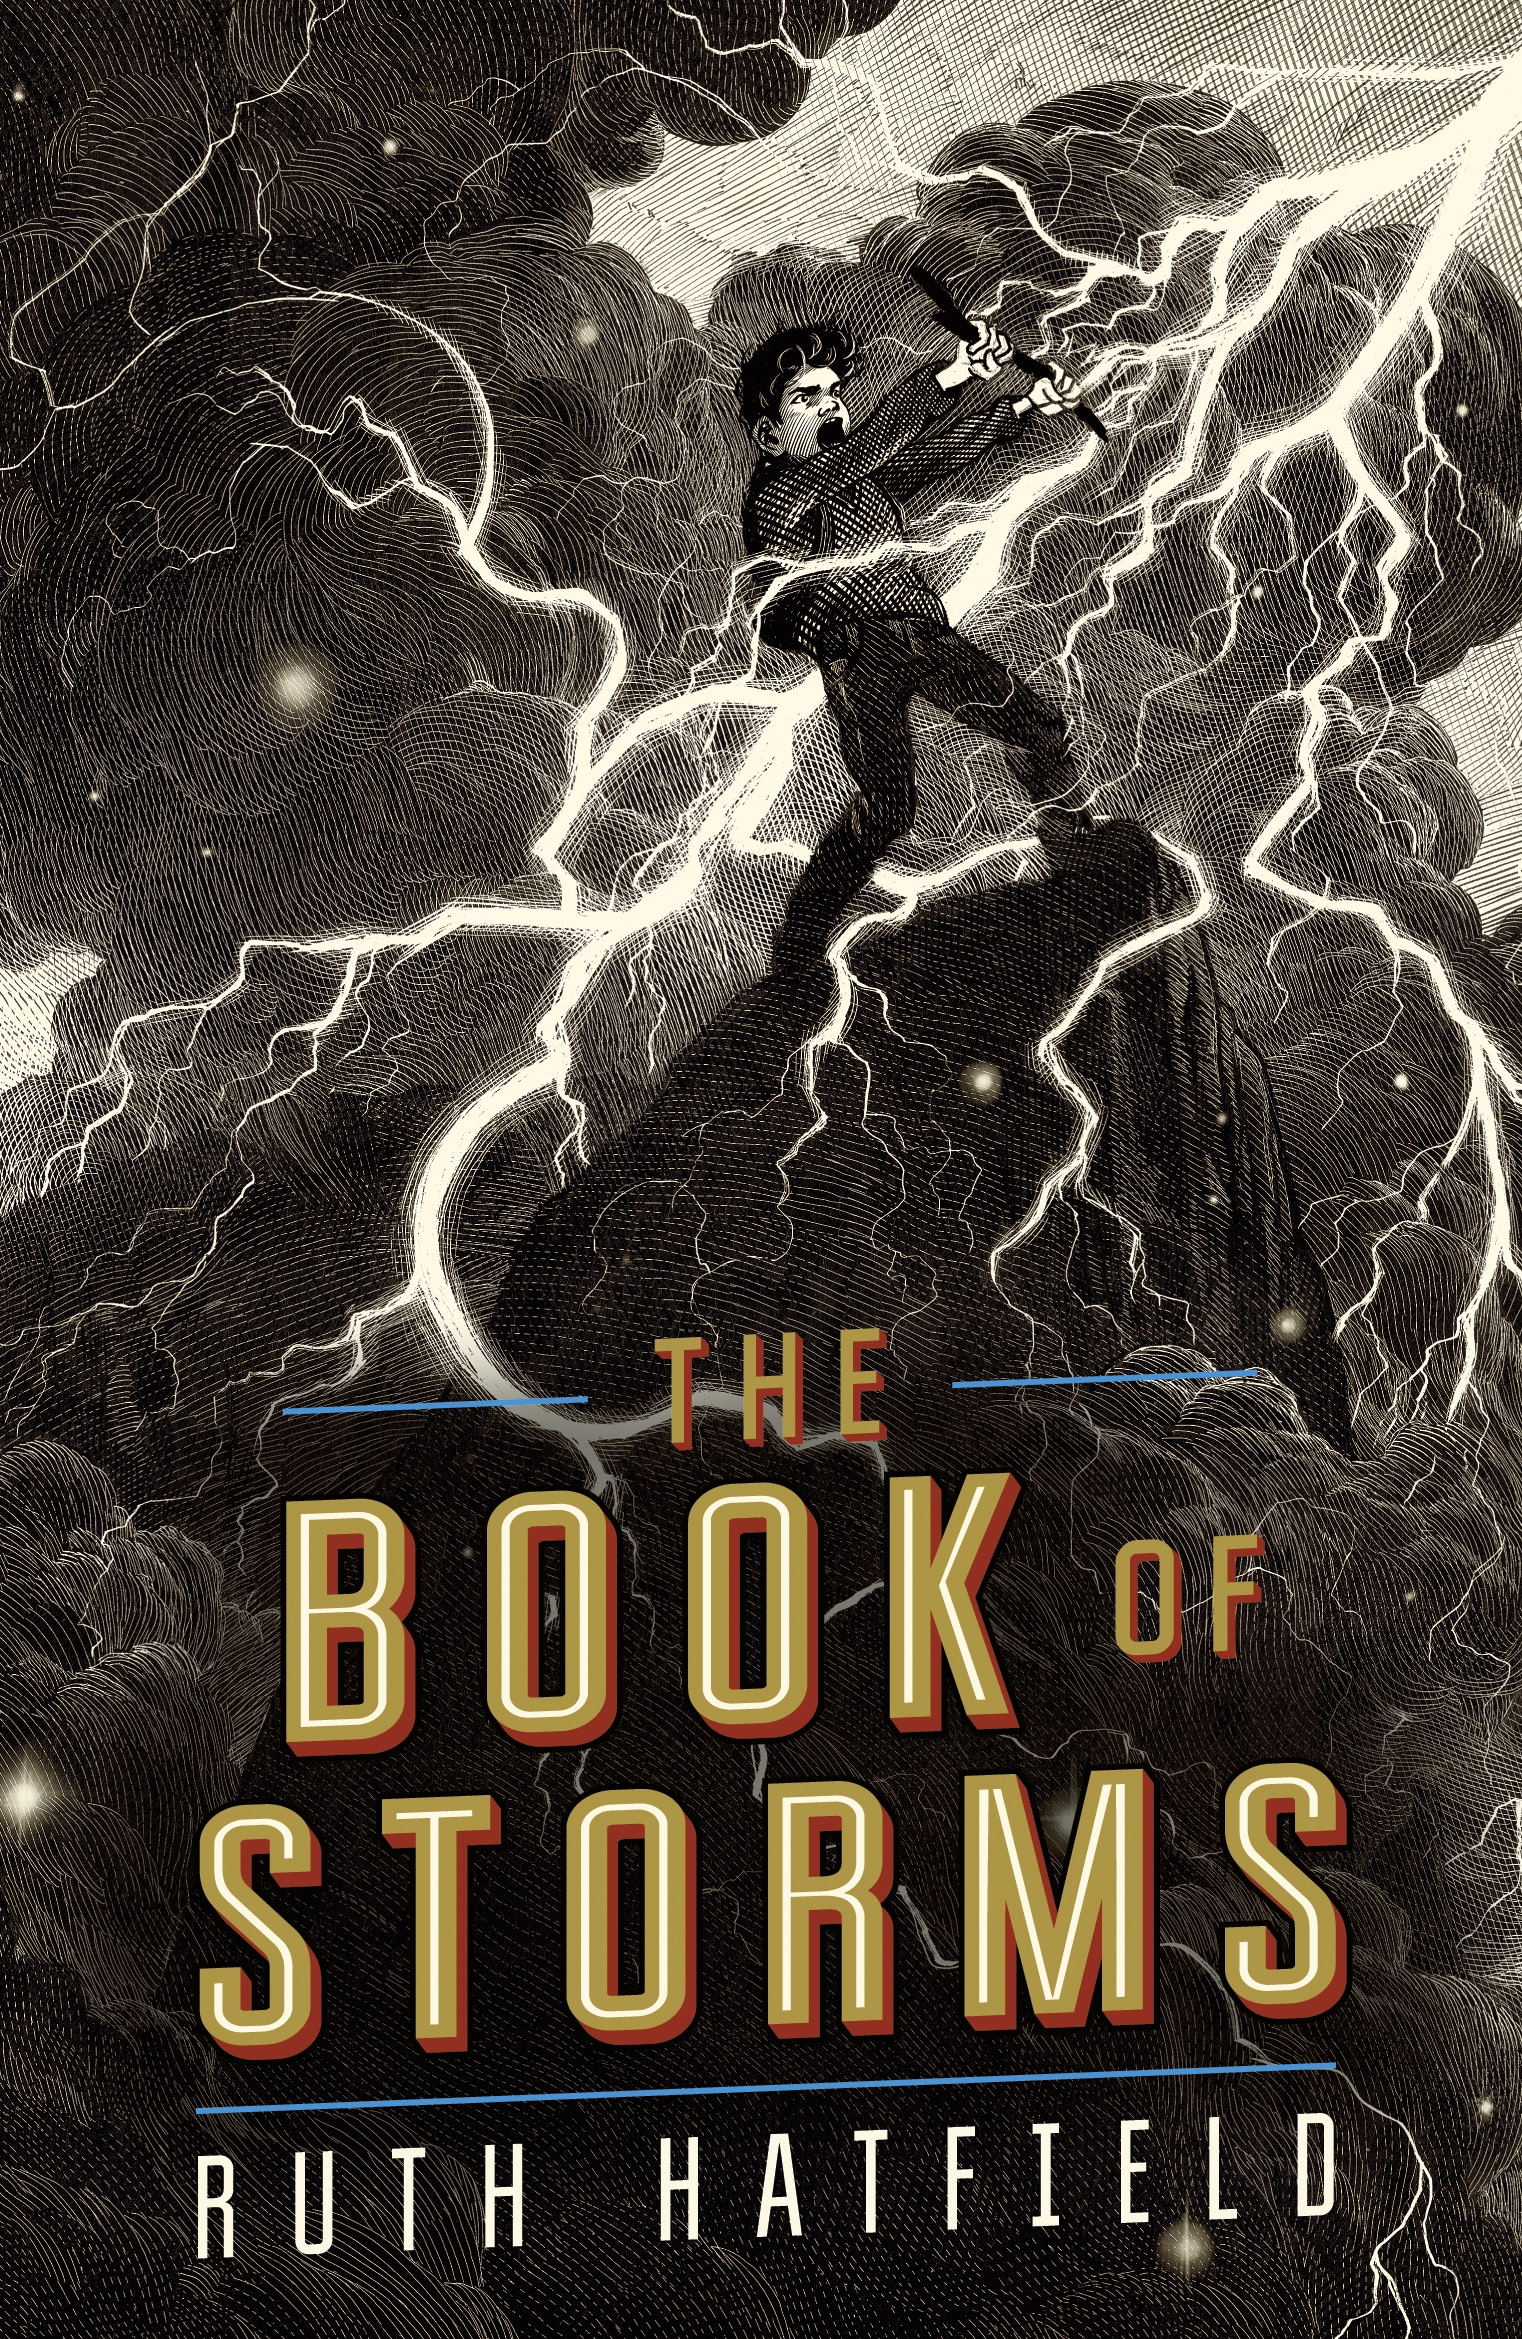 The Book of Storms by Ruth Hatfield